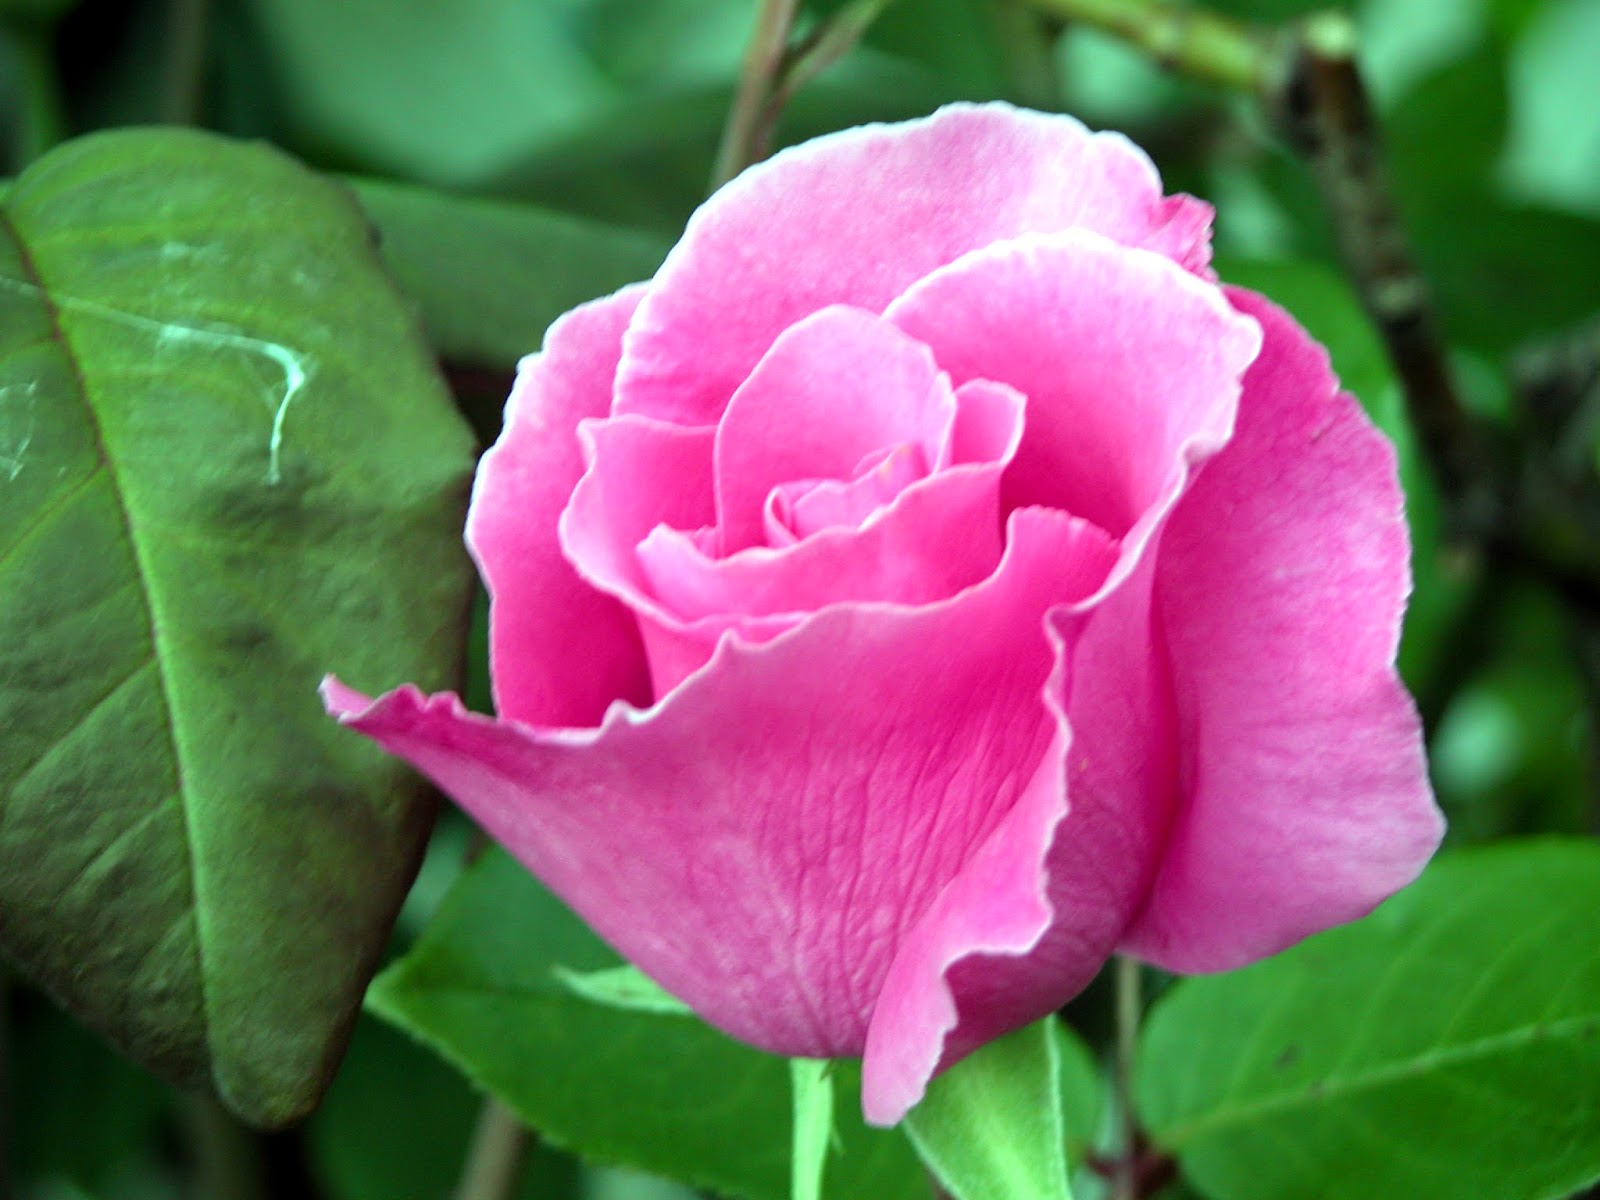 Beautiful And Amazing Flowers From All Over The World Nice Pictures Images Photos